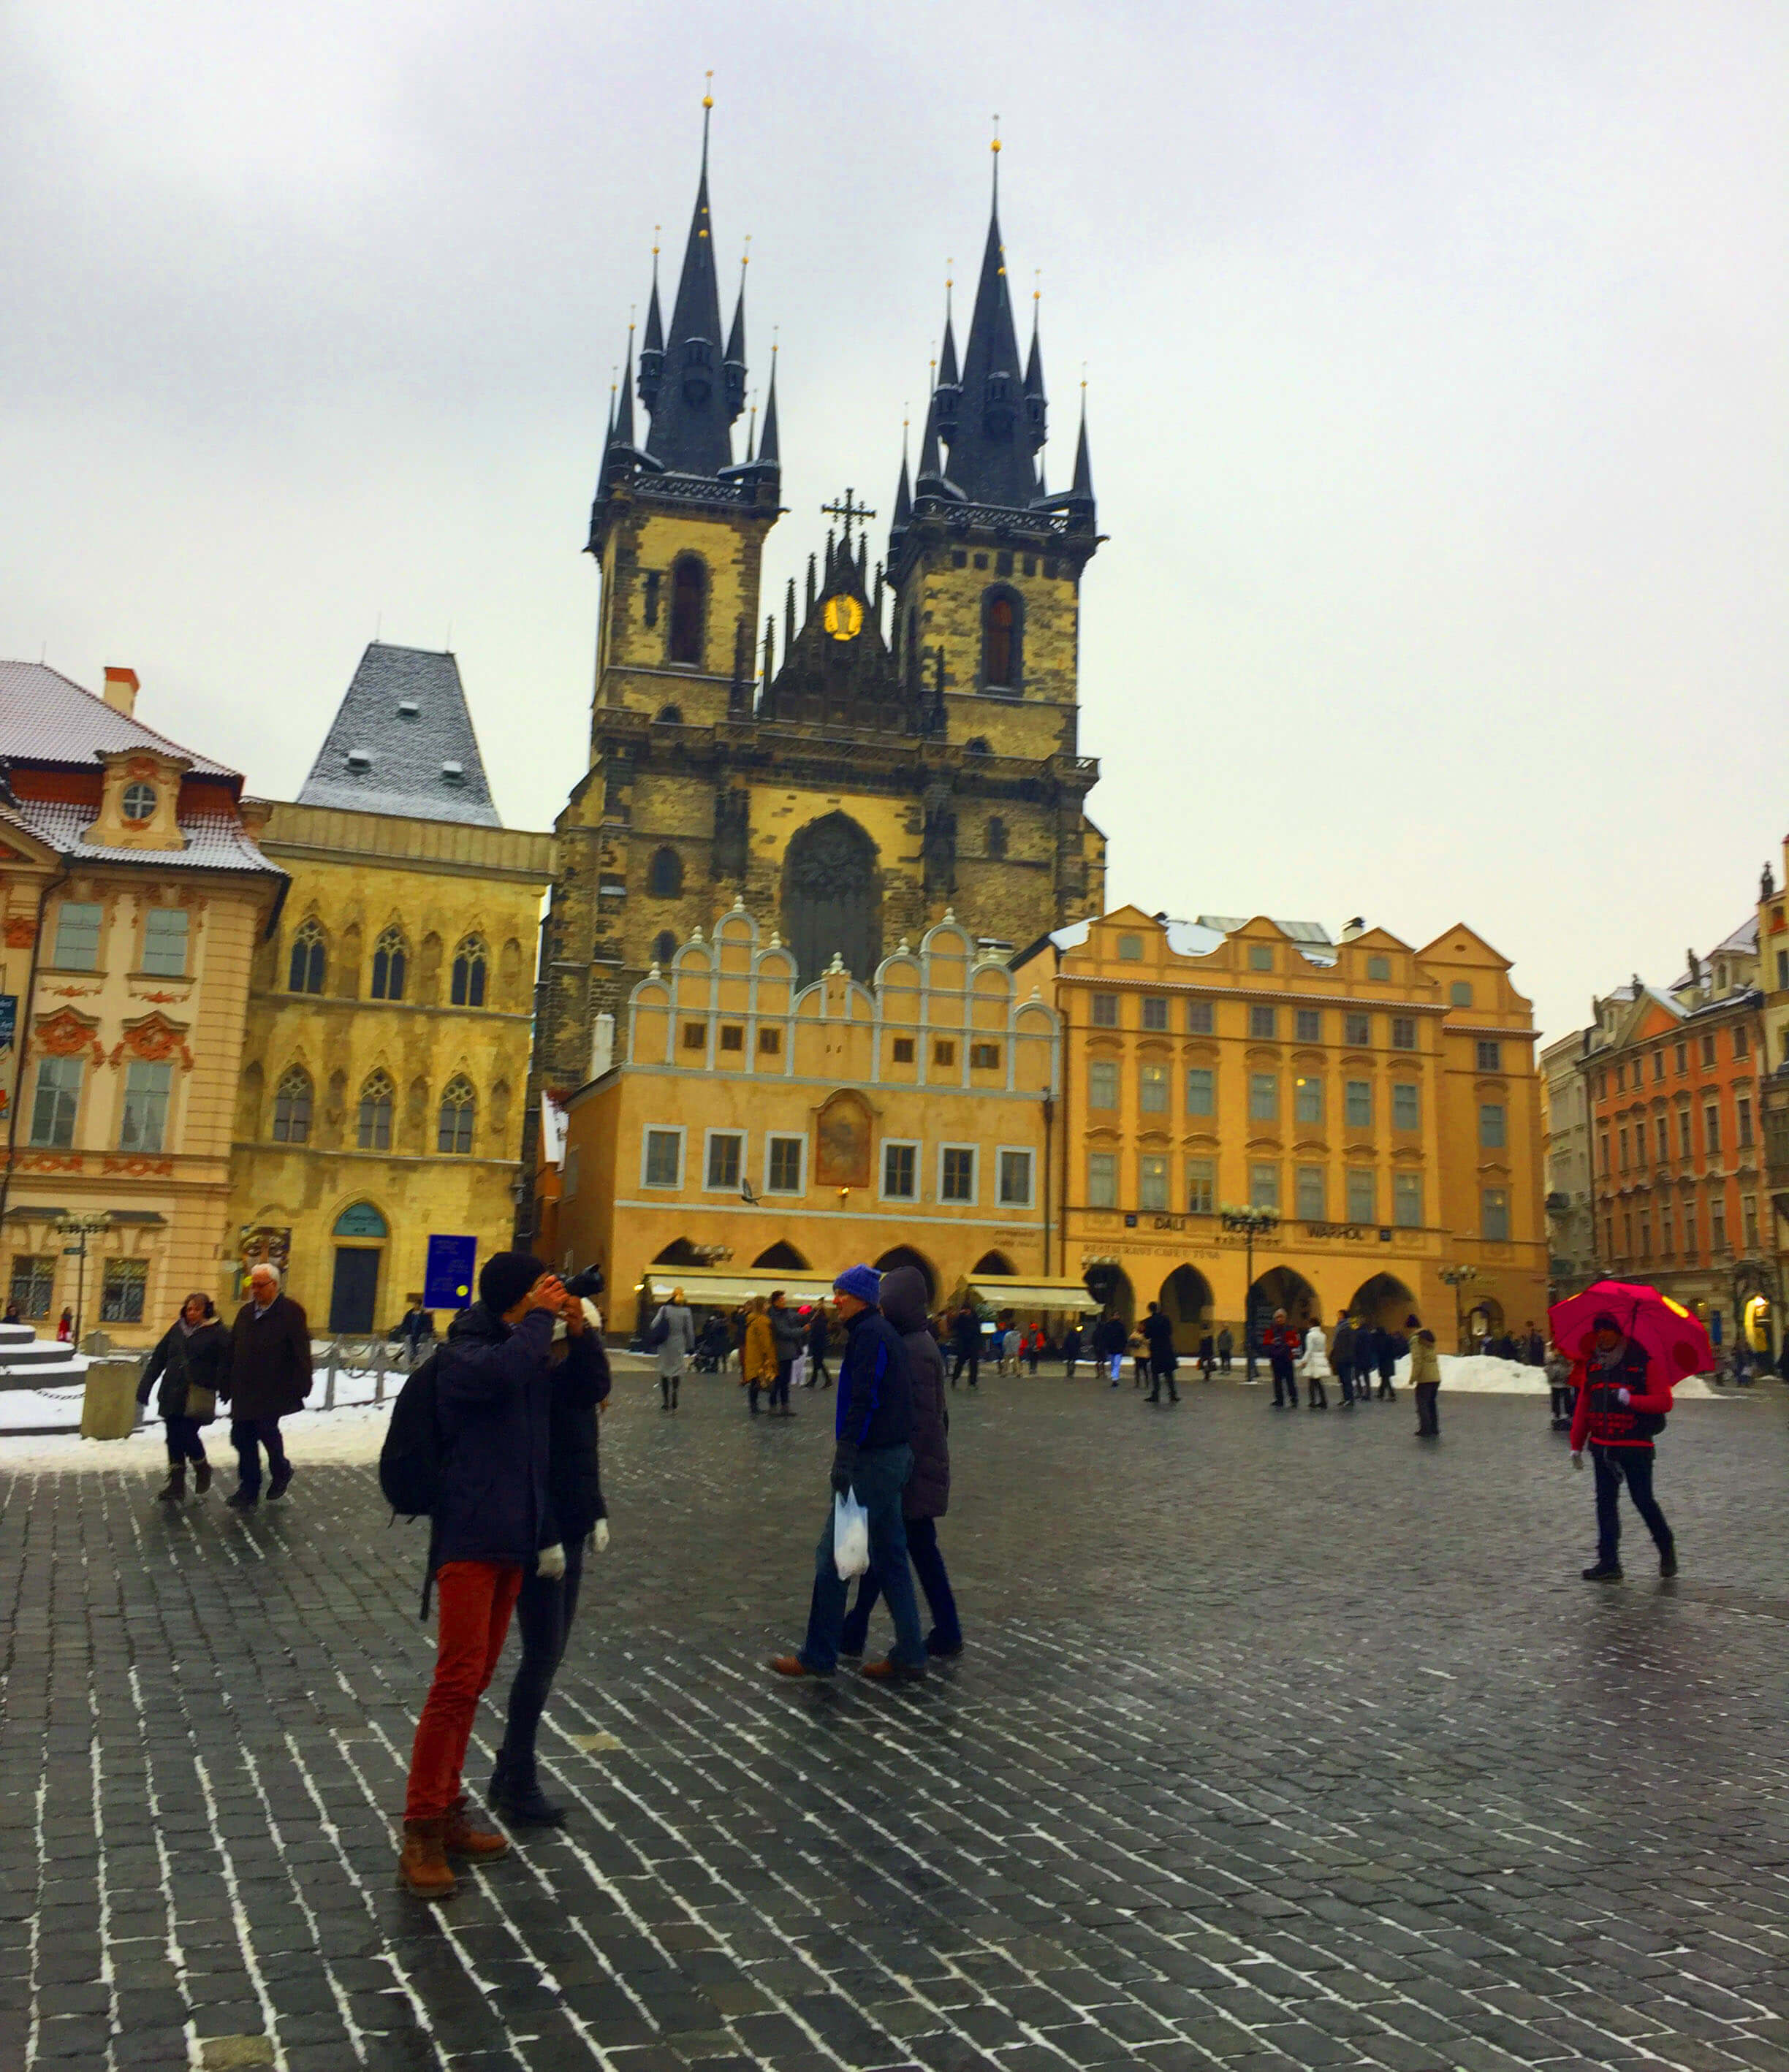 St. Vitus Cathedral- it was freezing outside